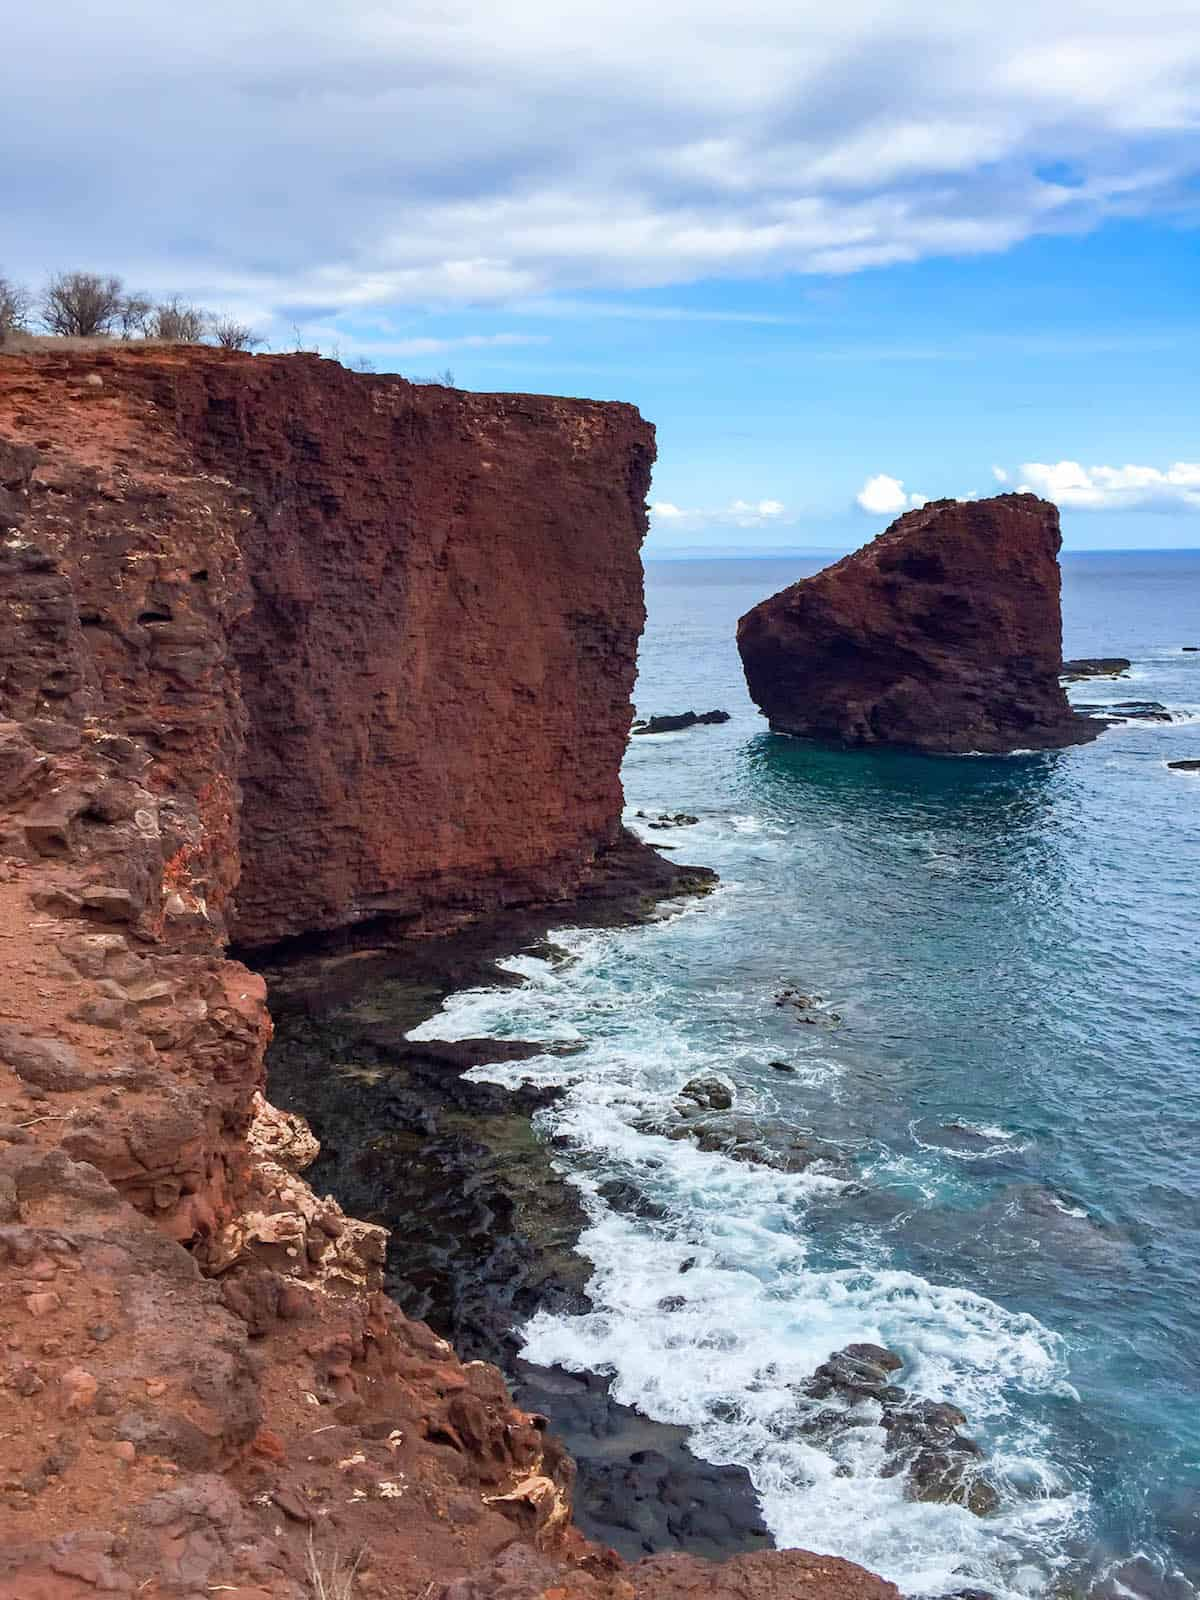 Sweetheart Rock Lanai Island, Hawaii